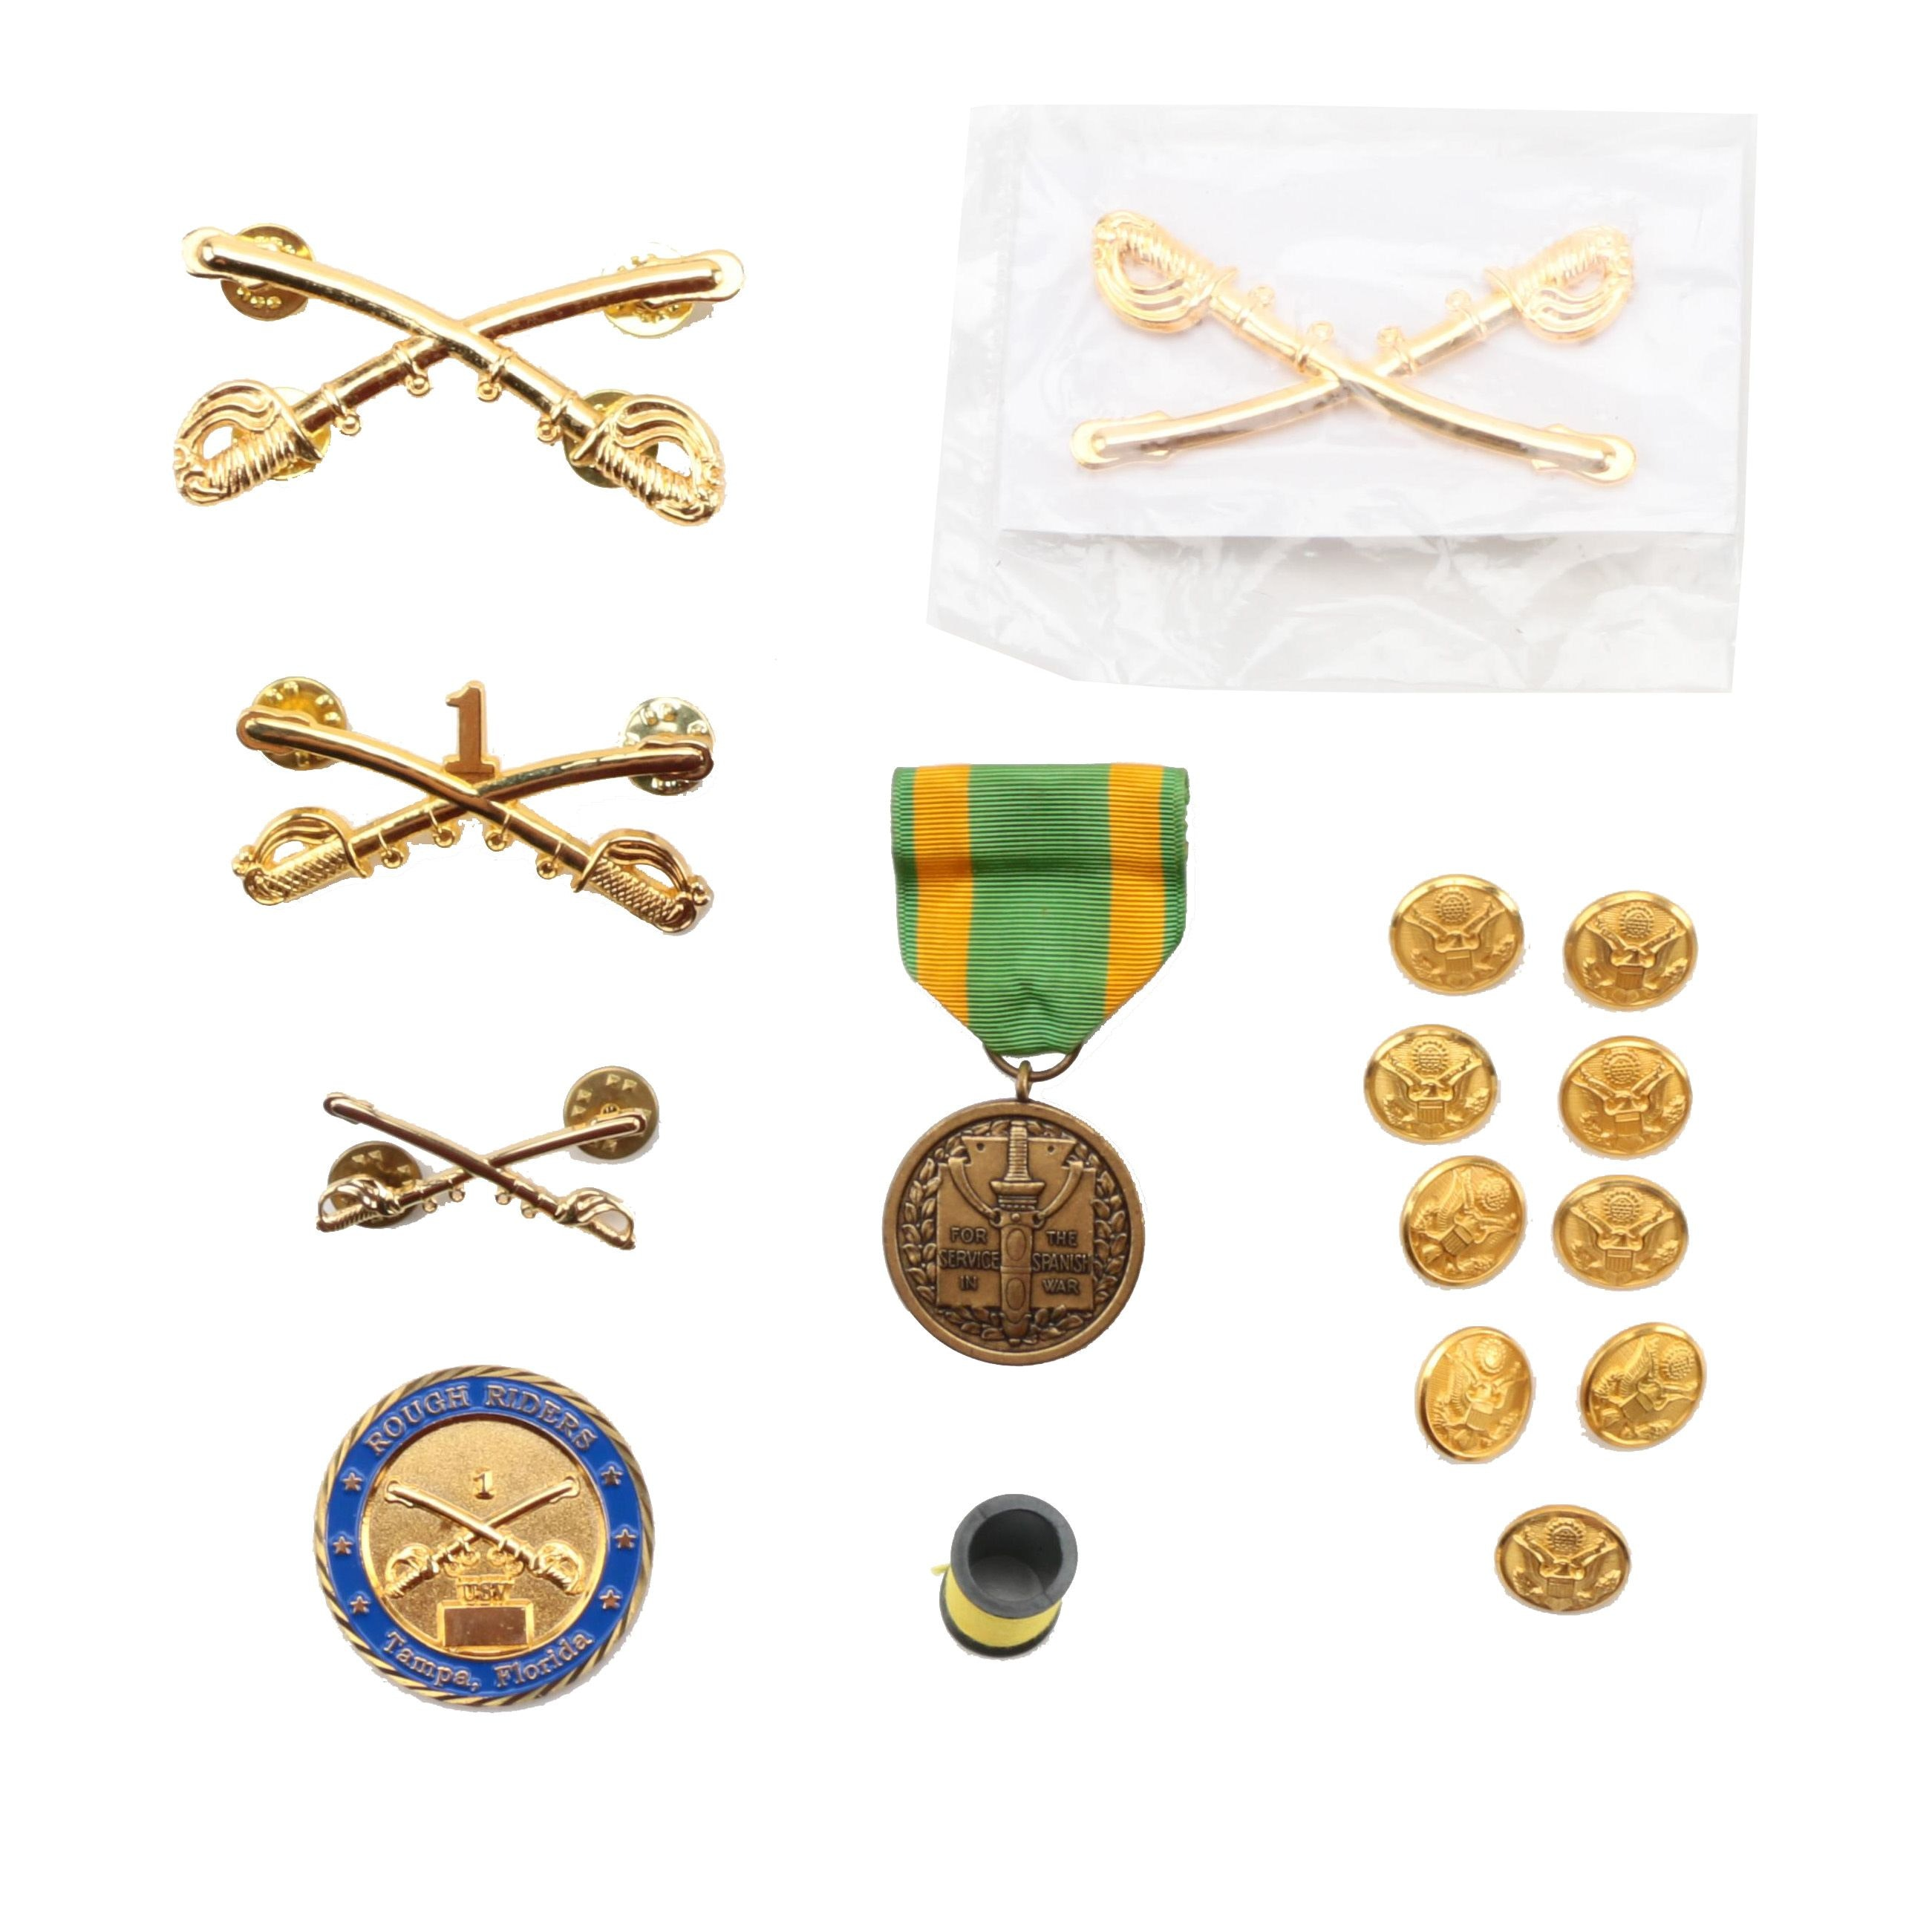 United States Military Medal and Pins